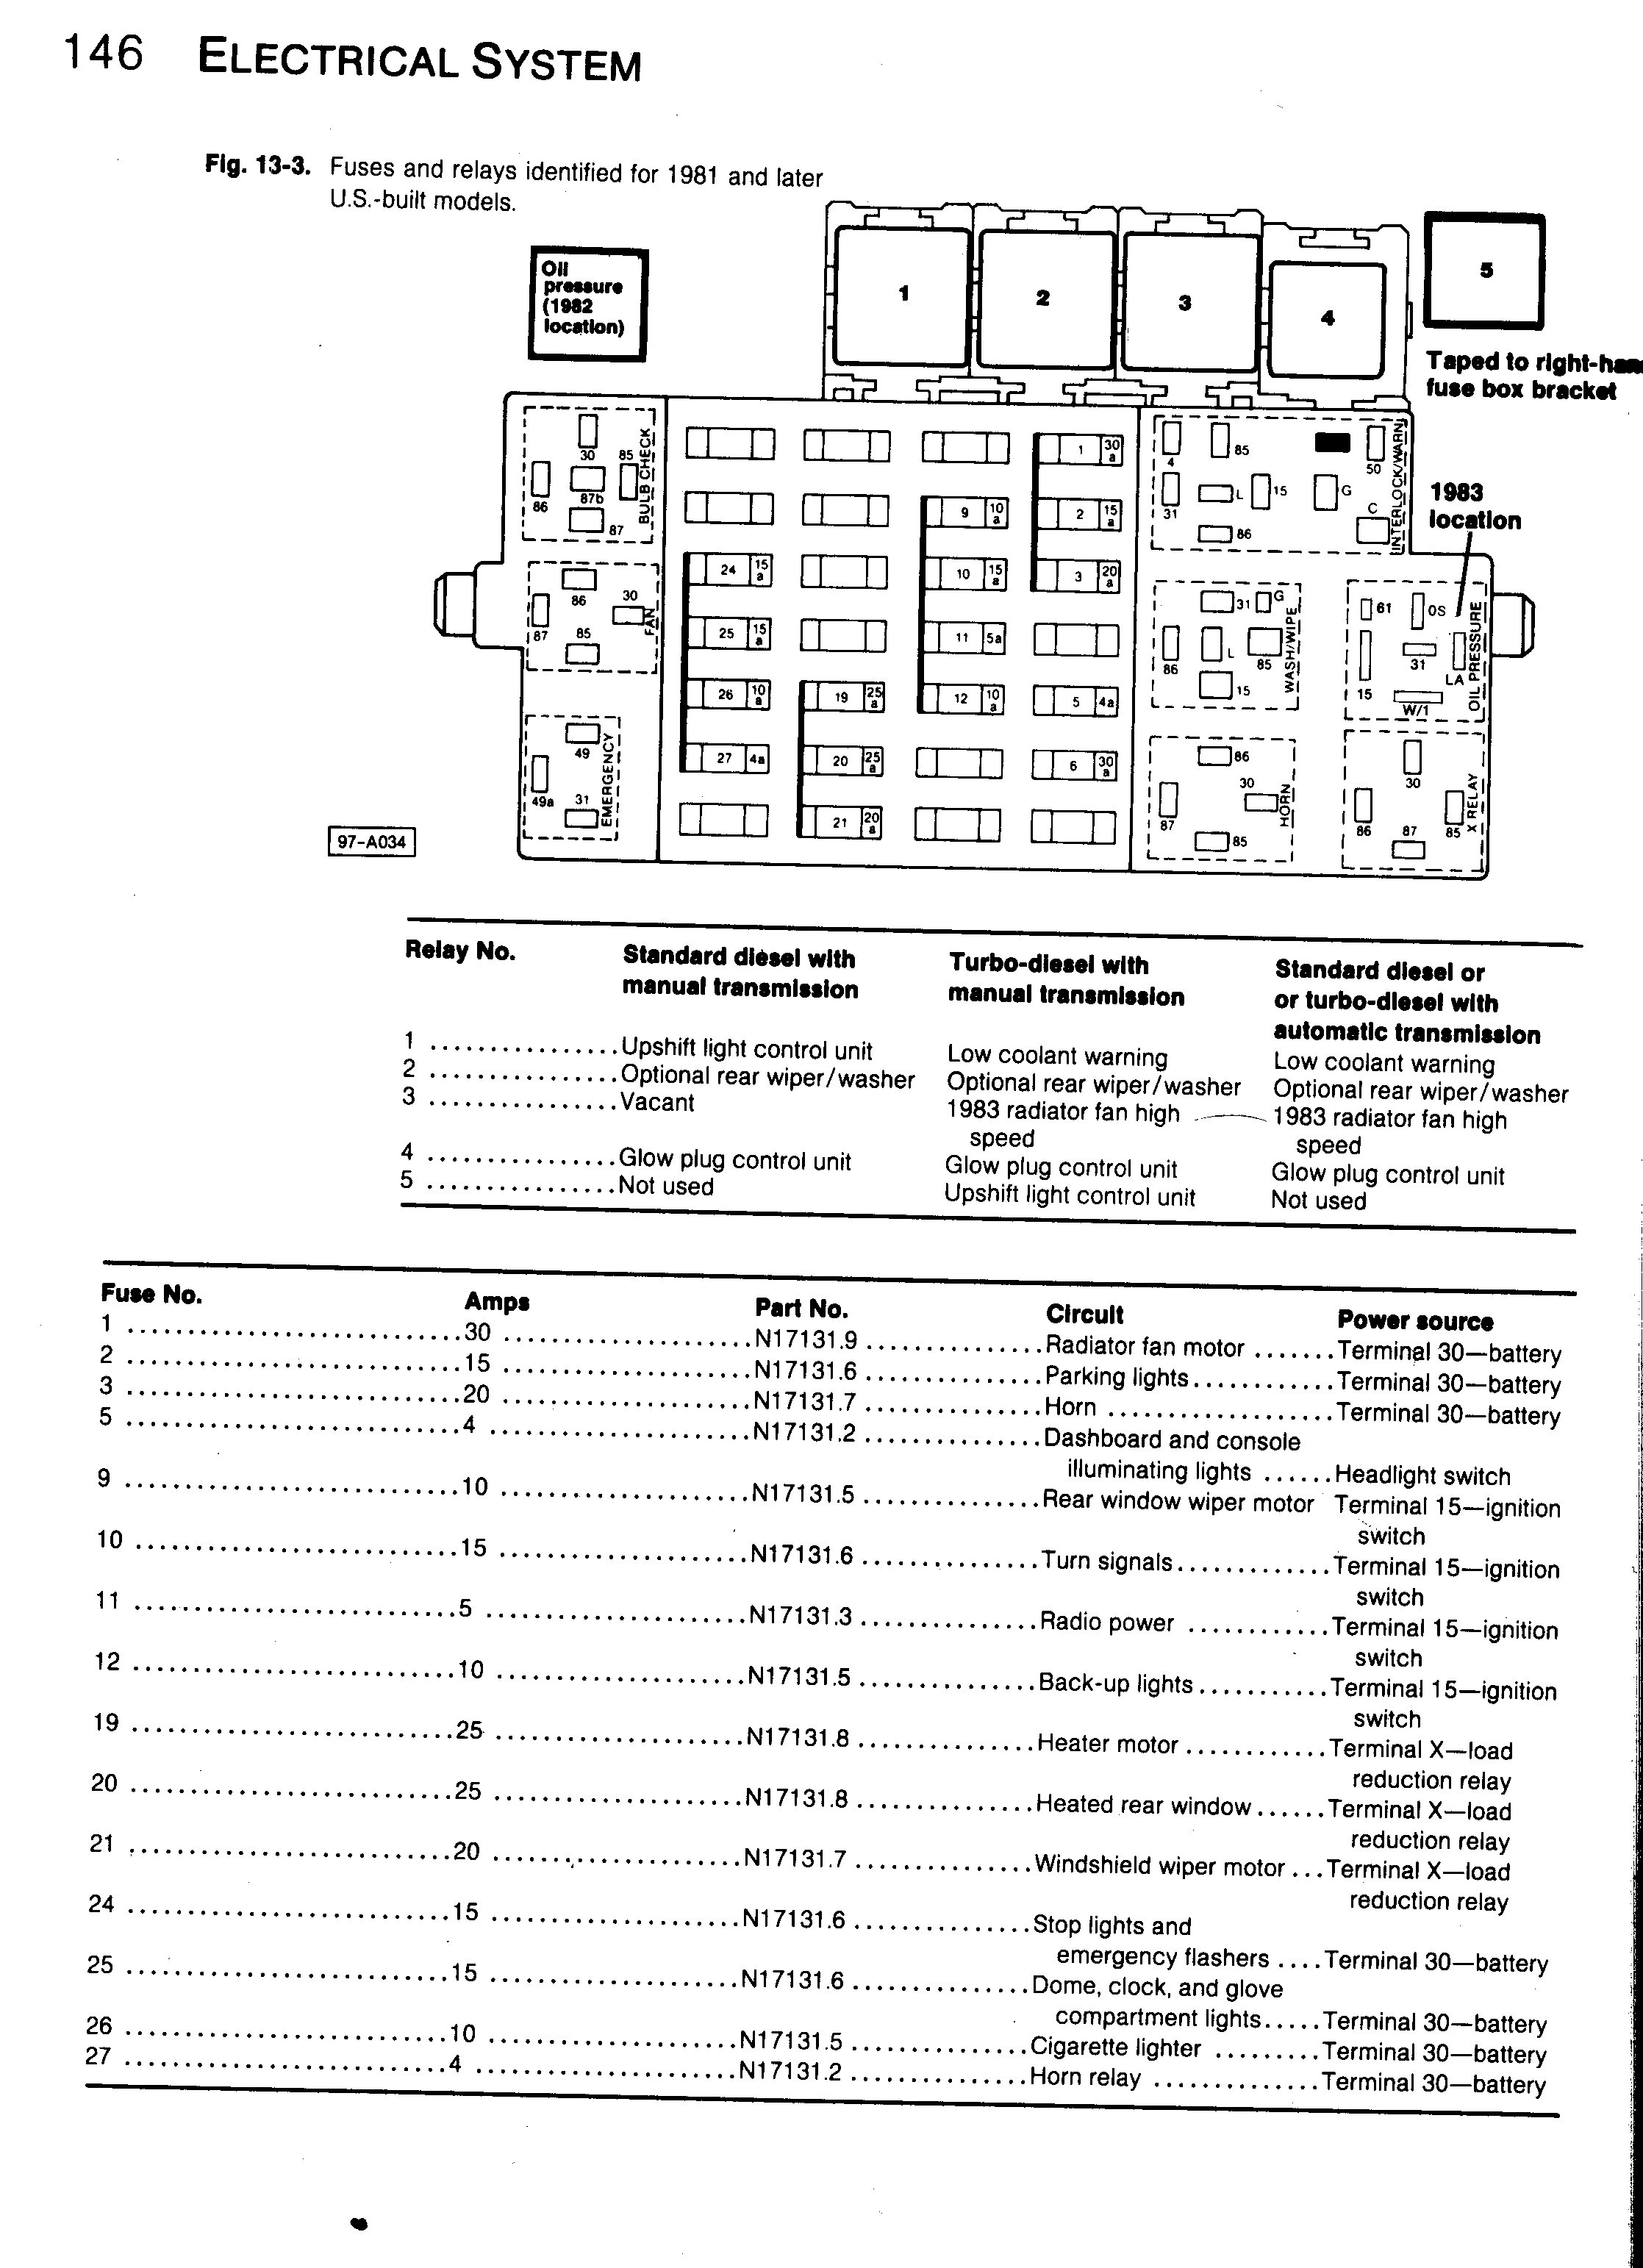 2007 Workhorse Fuse Box - wiring diagram solid-while -  solid-while.siamocampobasso.it | Workhorse Fuse Box |  | siamocampobasso.it